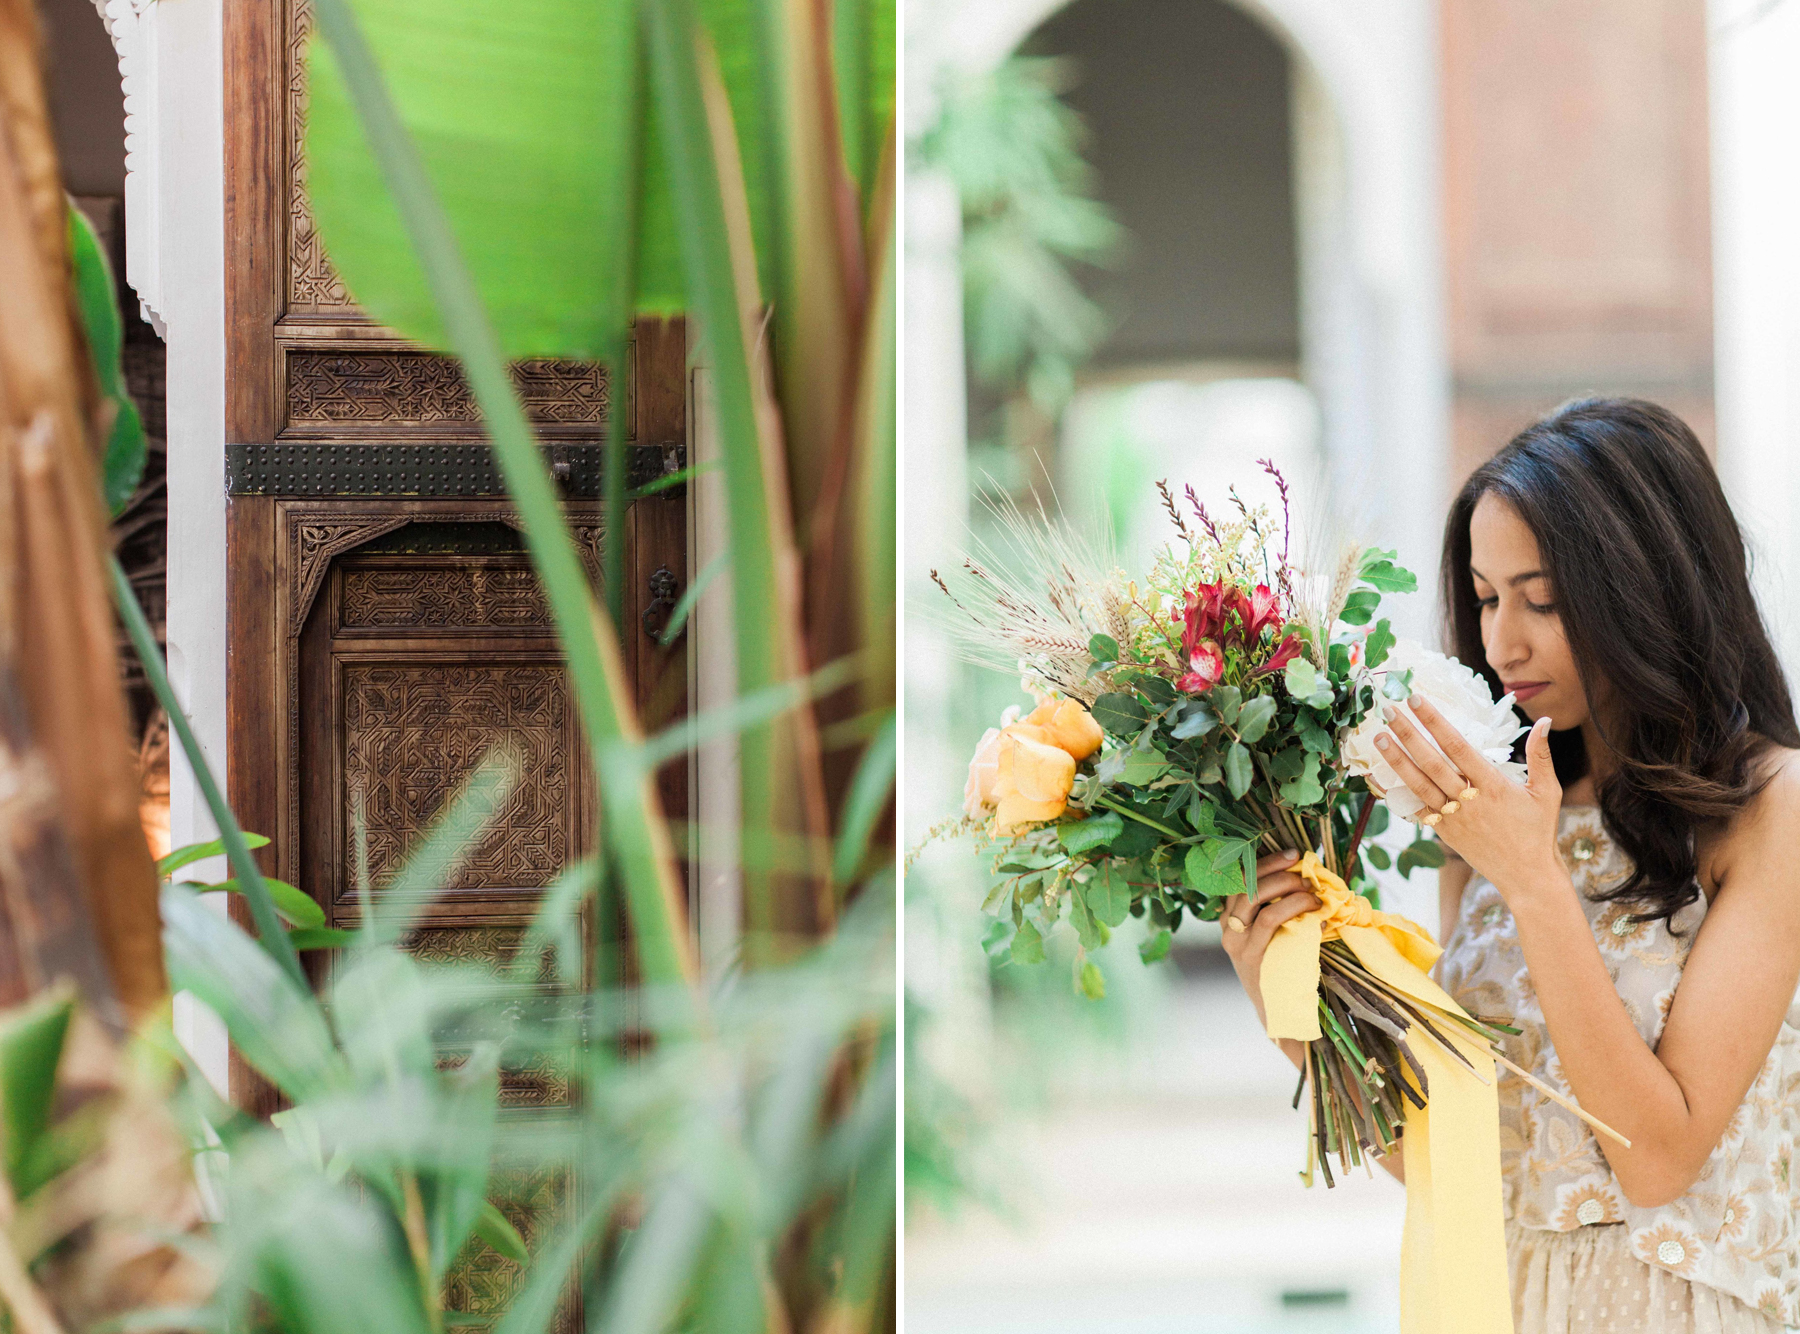 maria_rao_photography_weddings_engagements_marrakesh.jpg